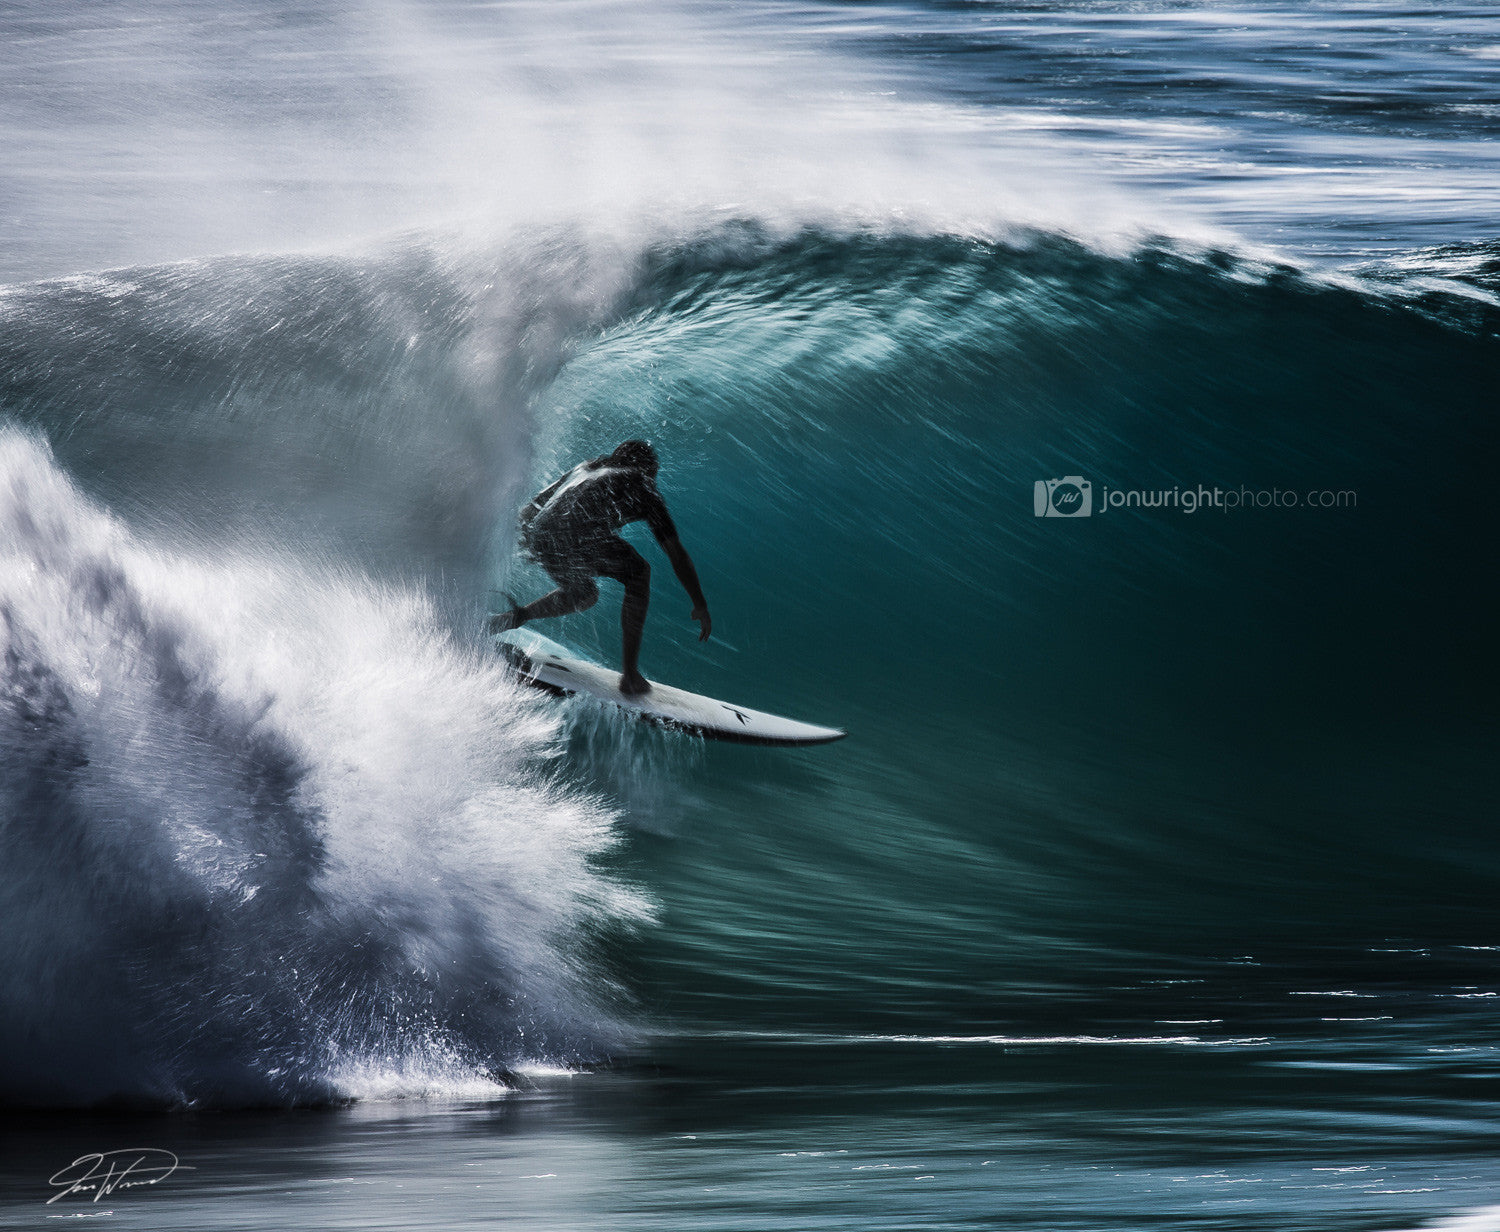 Surfer speed blur - Duranbah, NSW QLD